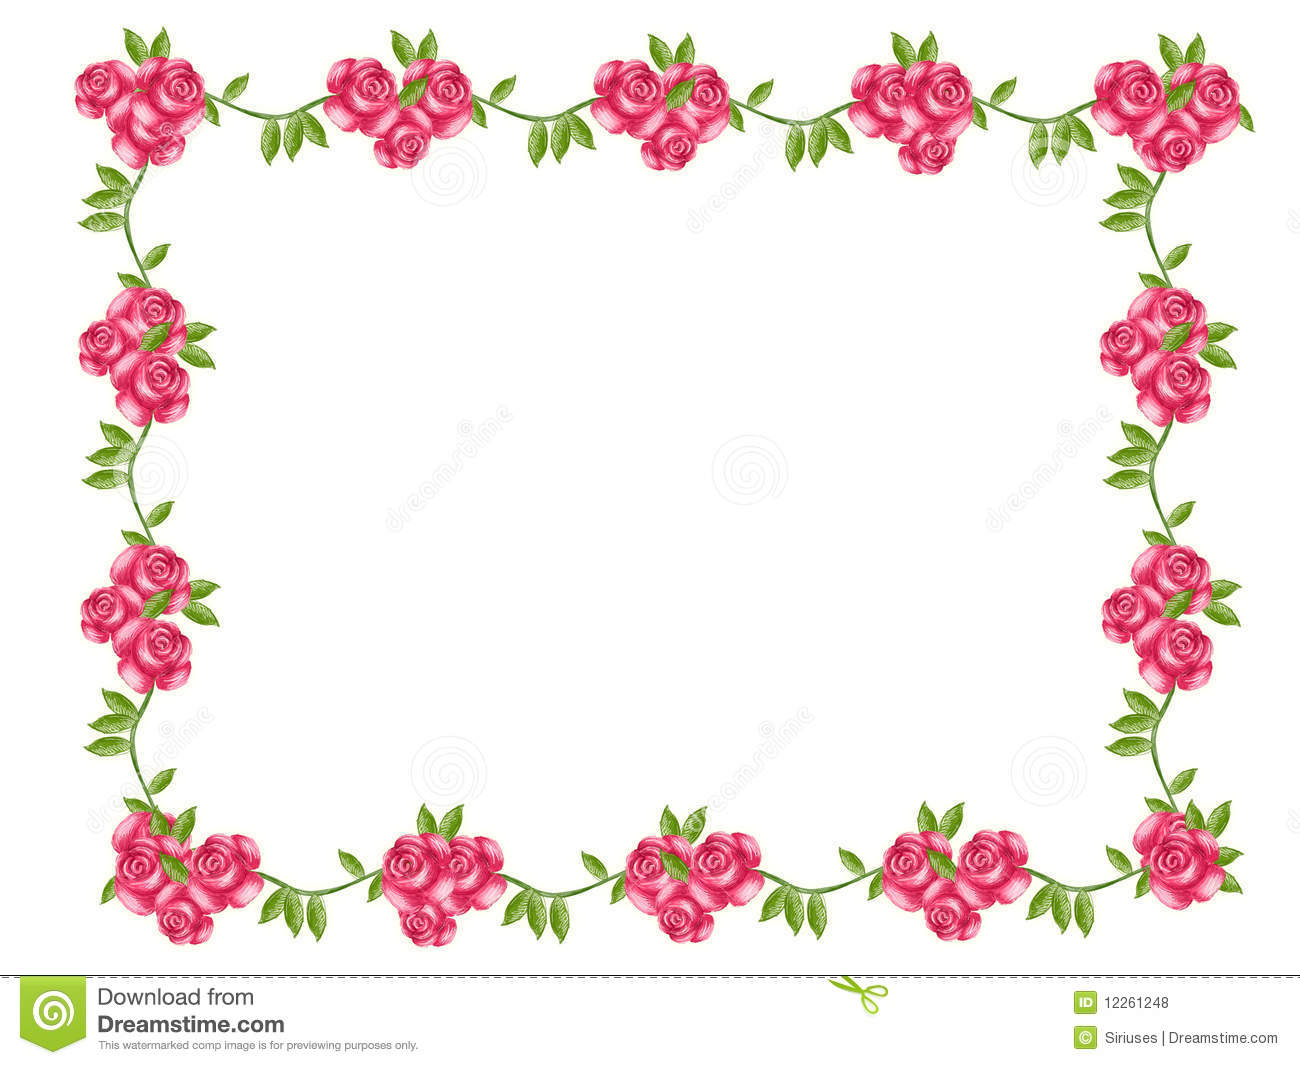 Flower frame stock illustration. Illustration of love - 12261248